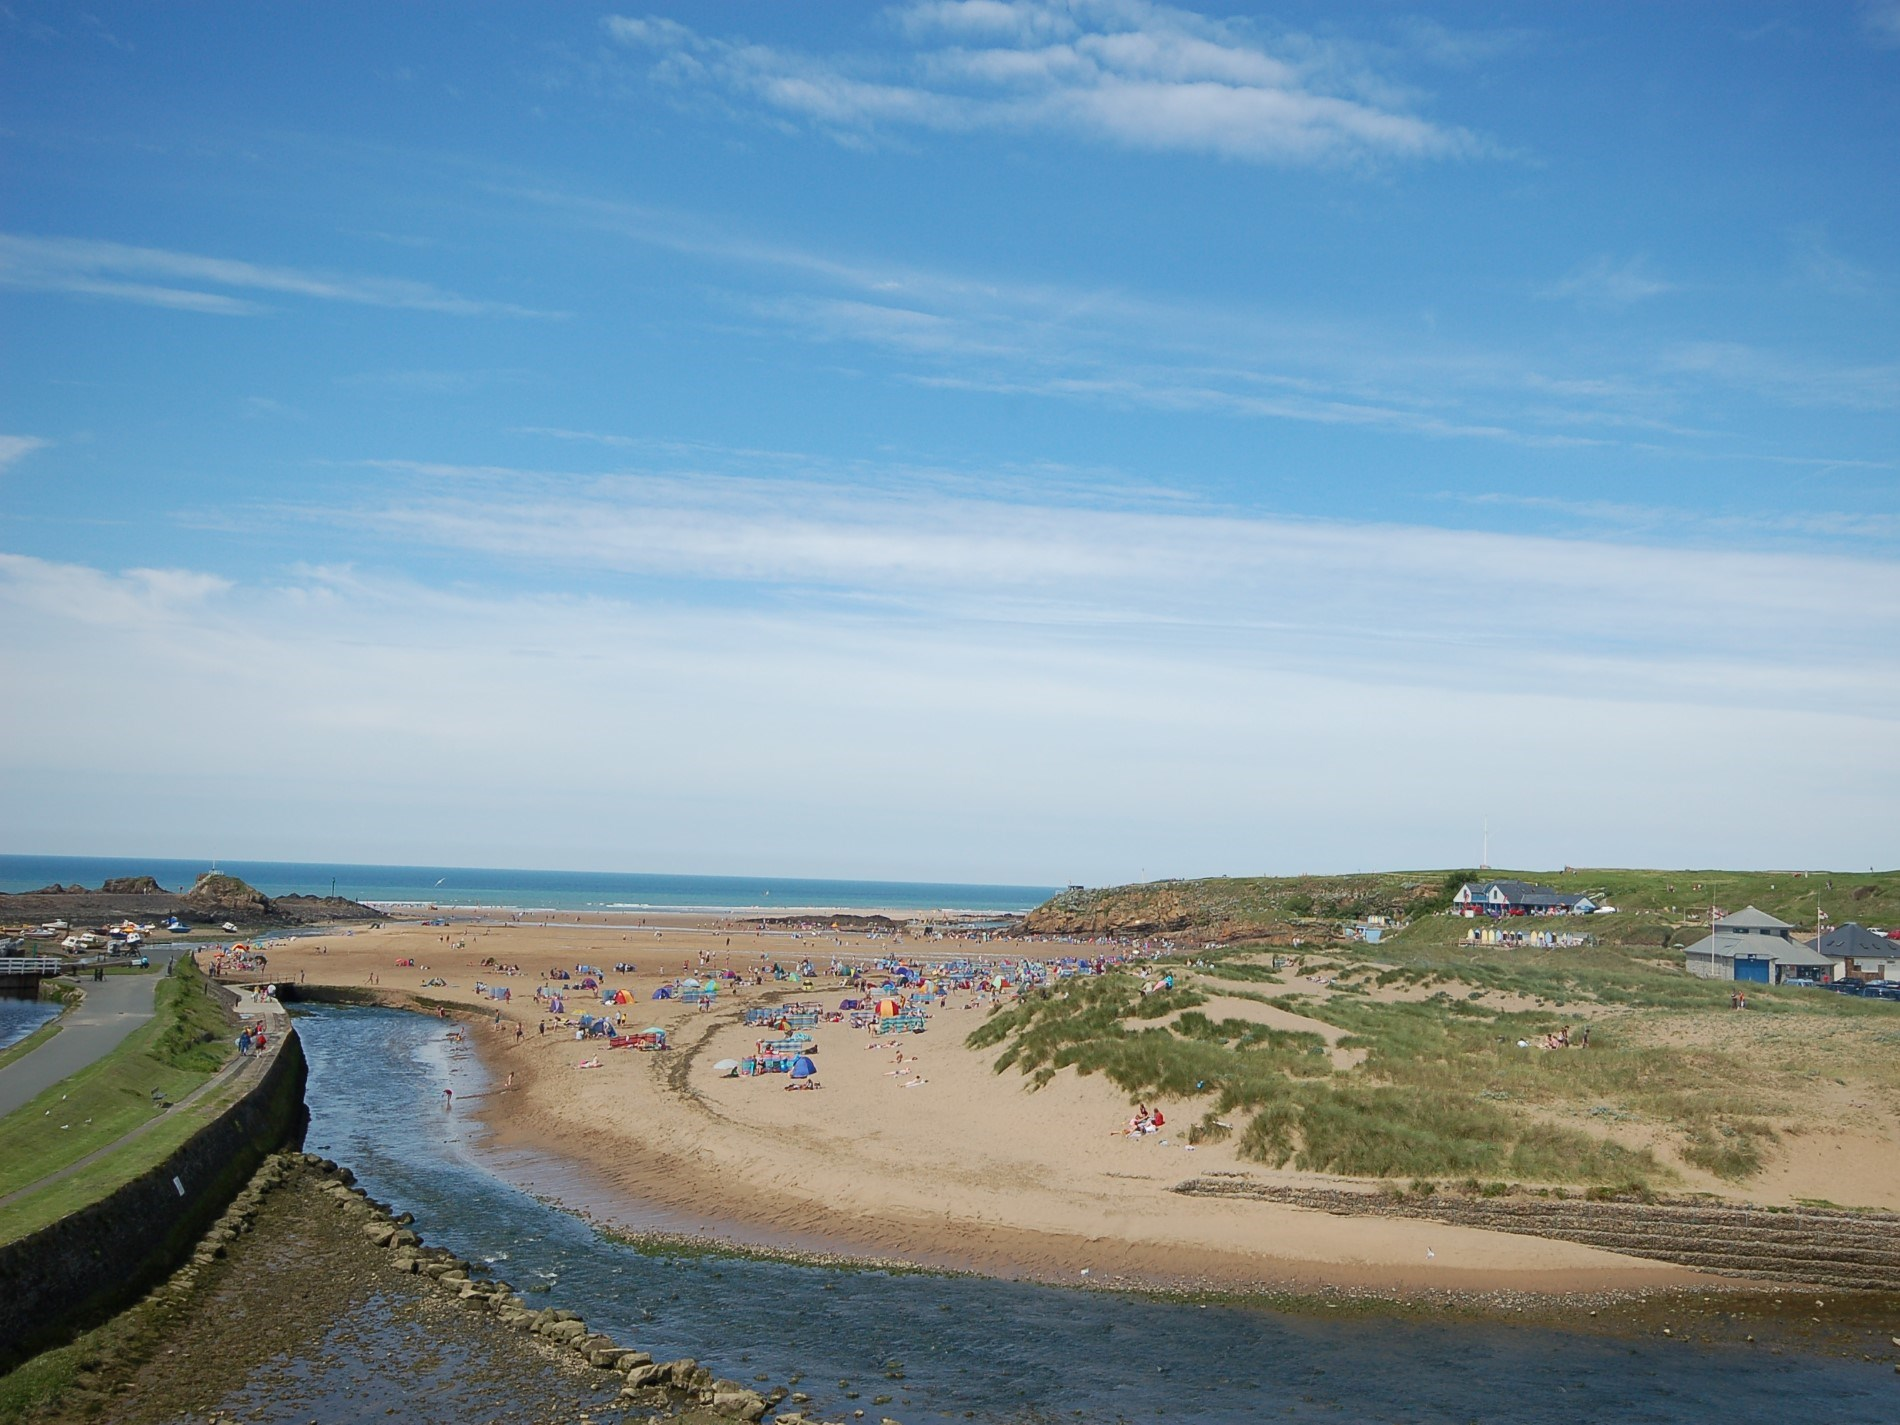 The sand beach at Bude is a short drive away